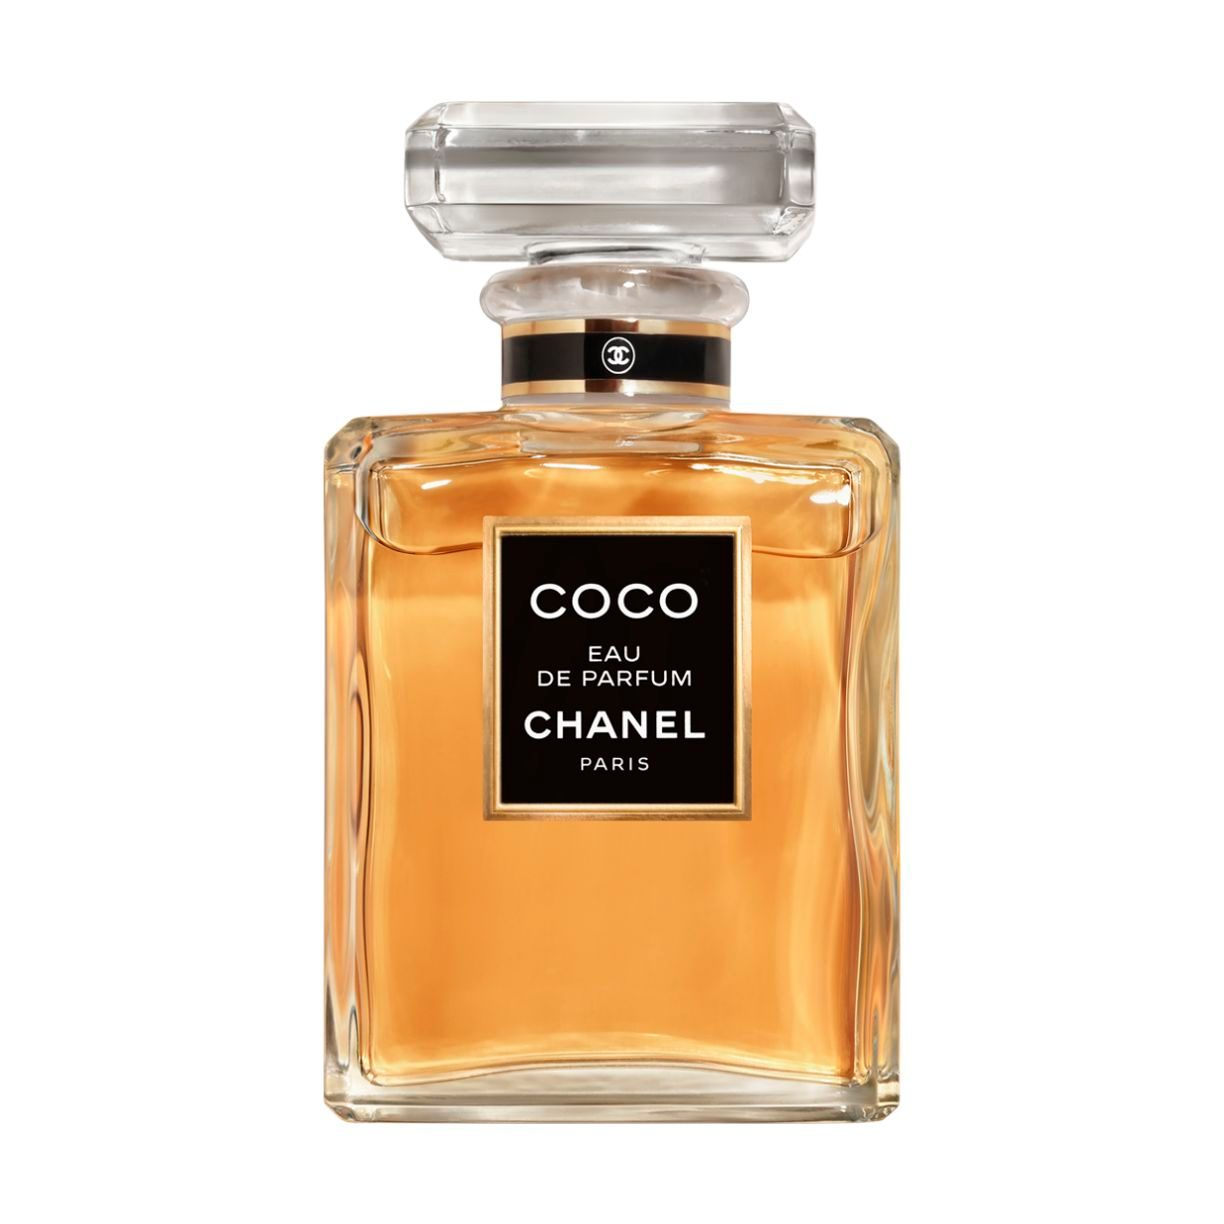 COCO EAU DE PARFUM SPRAY